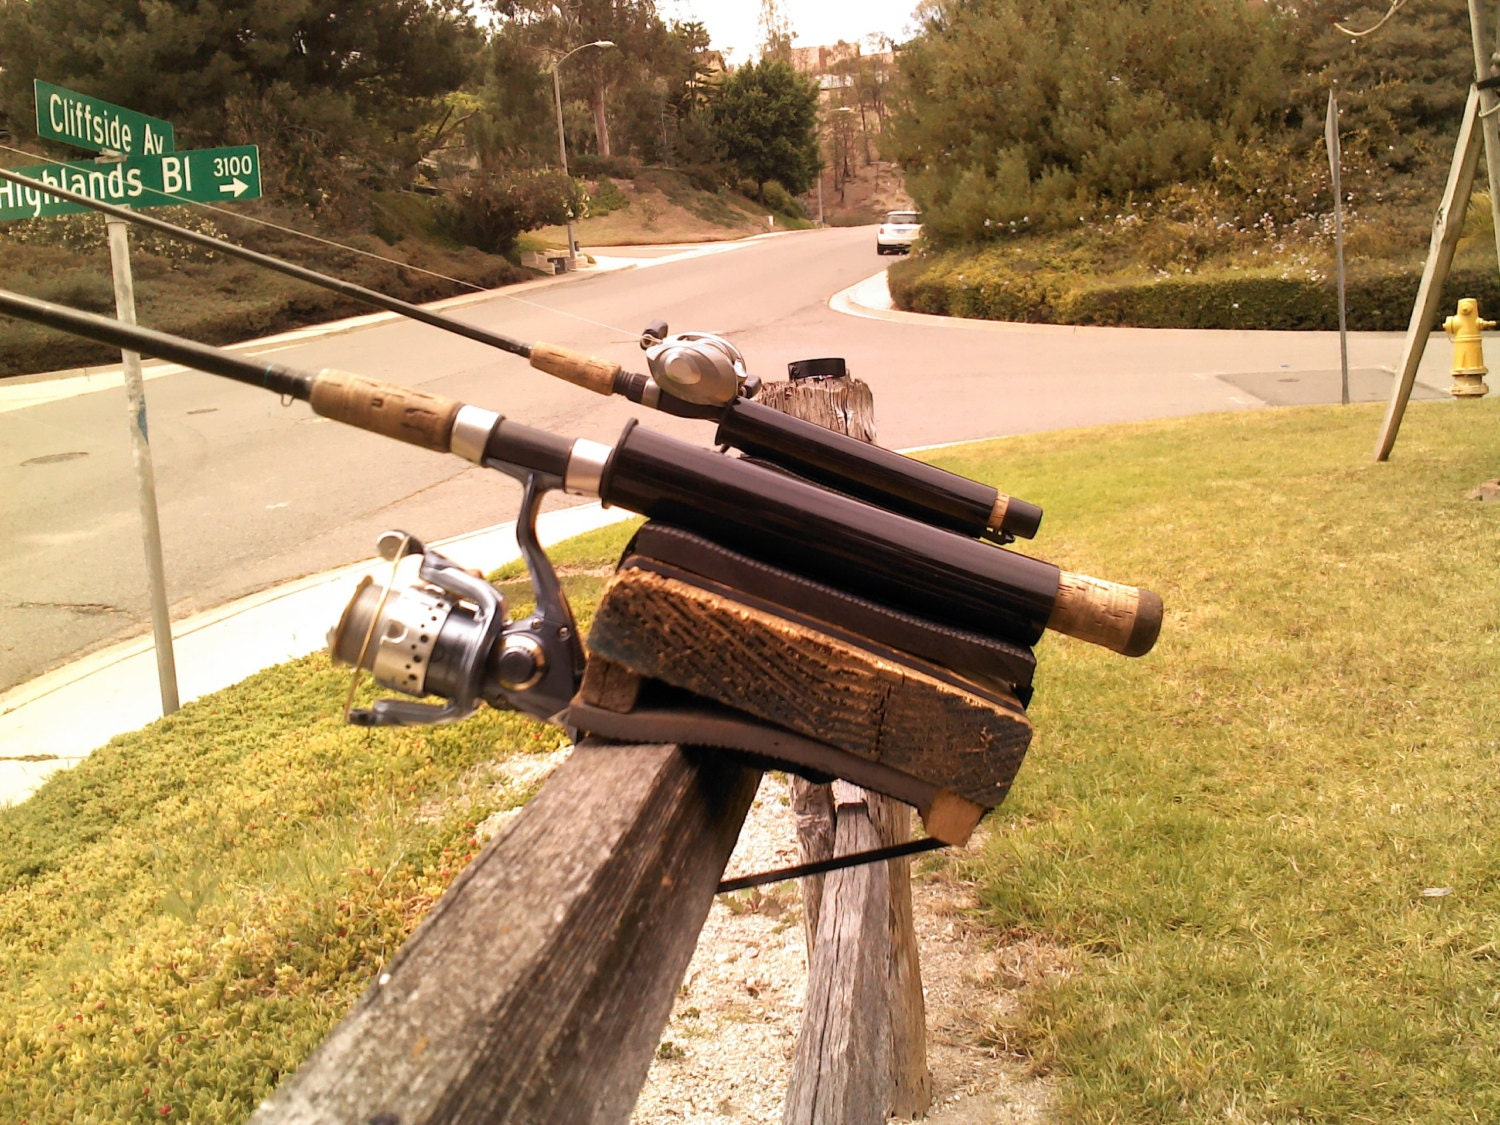 Pier fishing rod holder by kimsrodholders on etsy for Best pier fishing rod